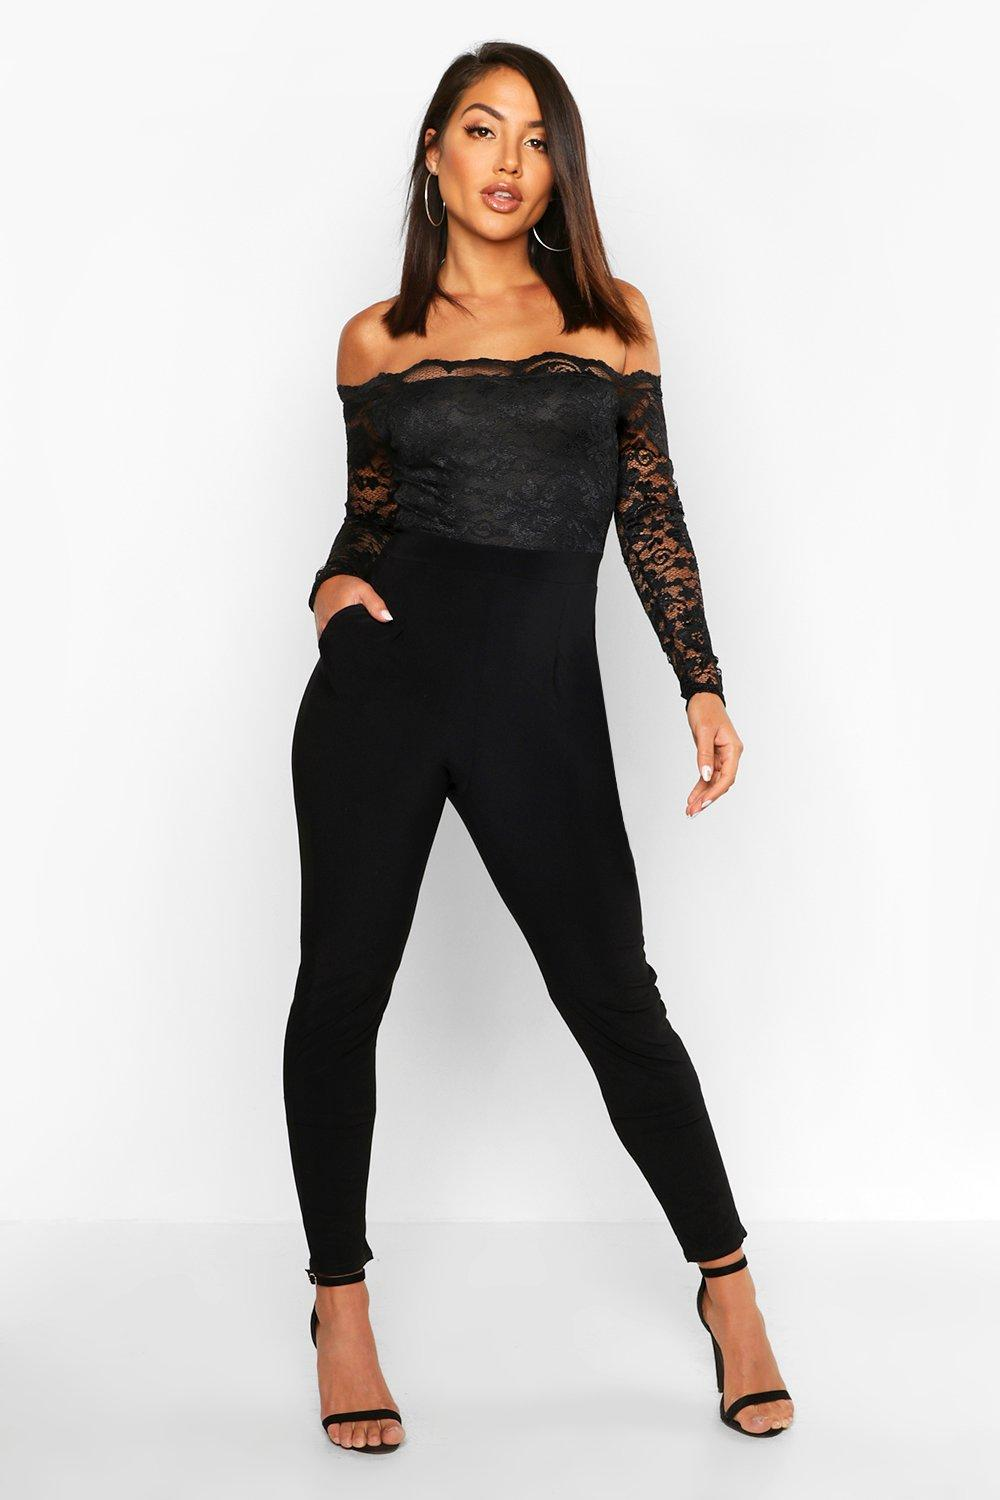 Find lace jumpsuit at ShopStyle. Shop the latest collection of lace jumpsuit from the most popular stores - all in one place.